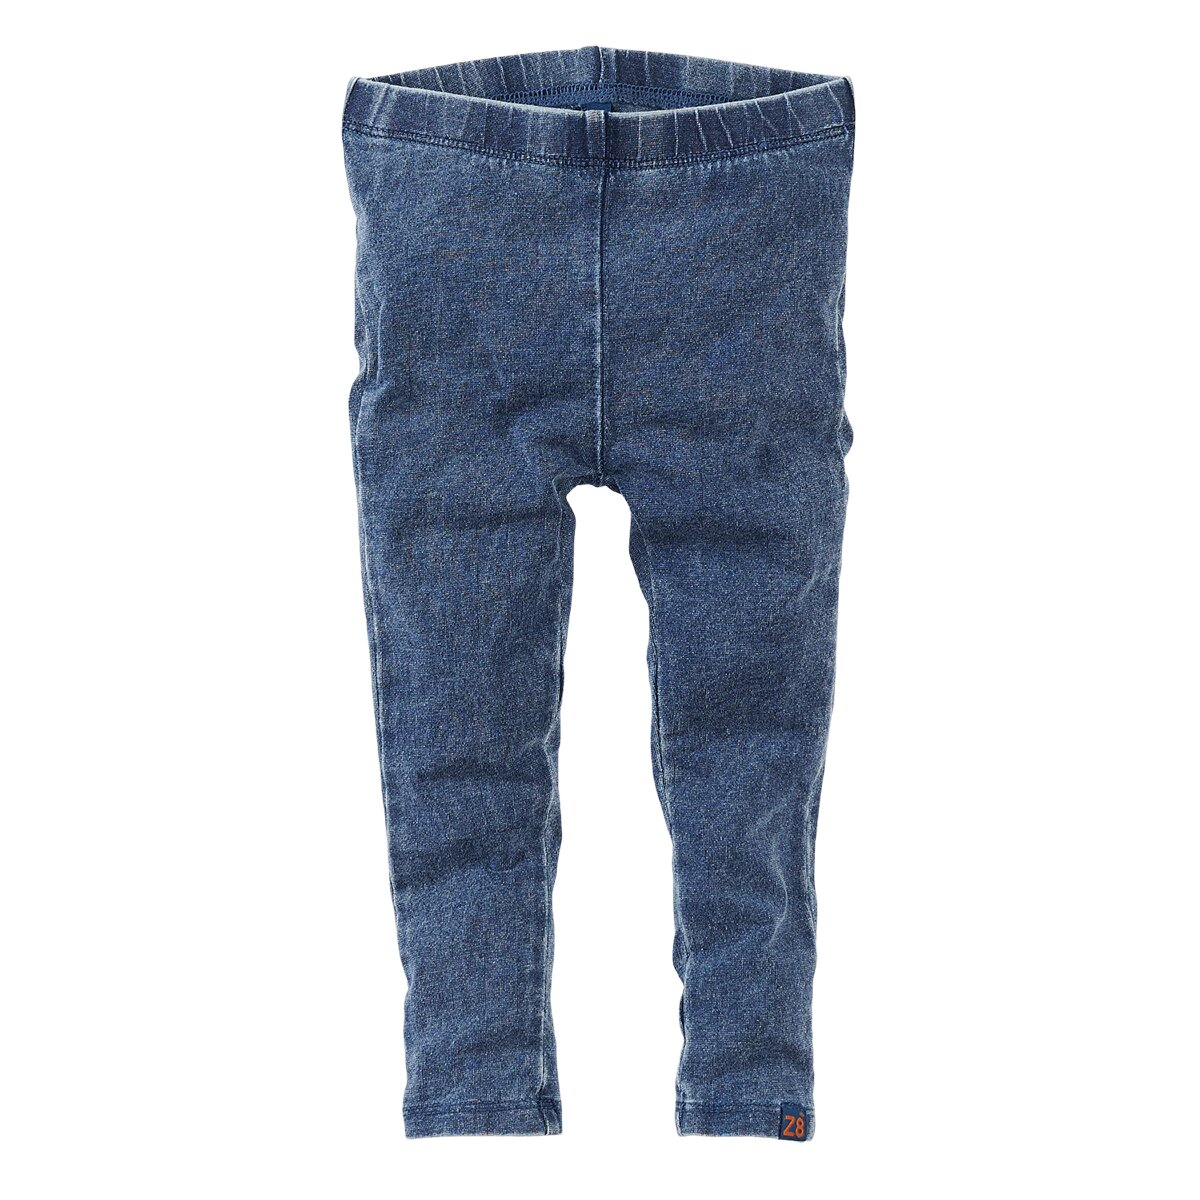 z8-mini-w20210040albury-denim